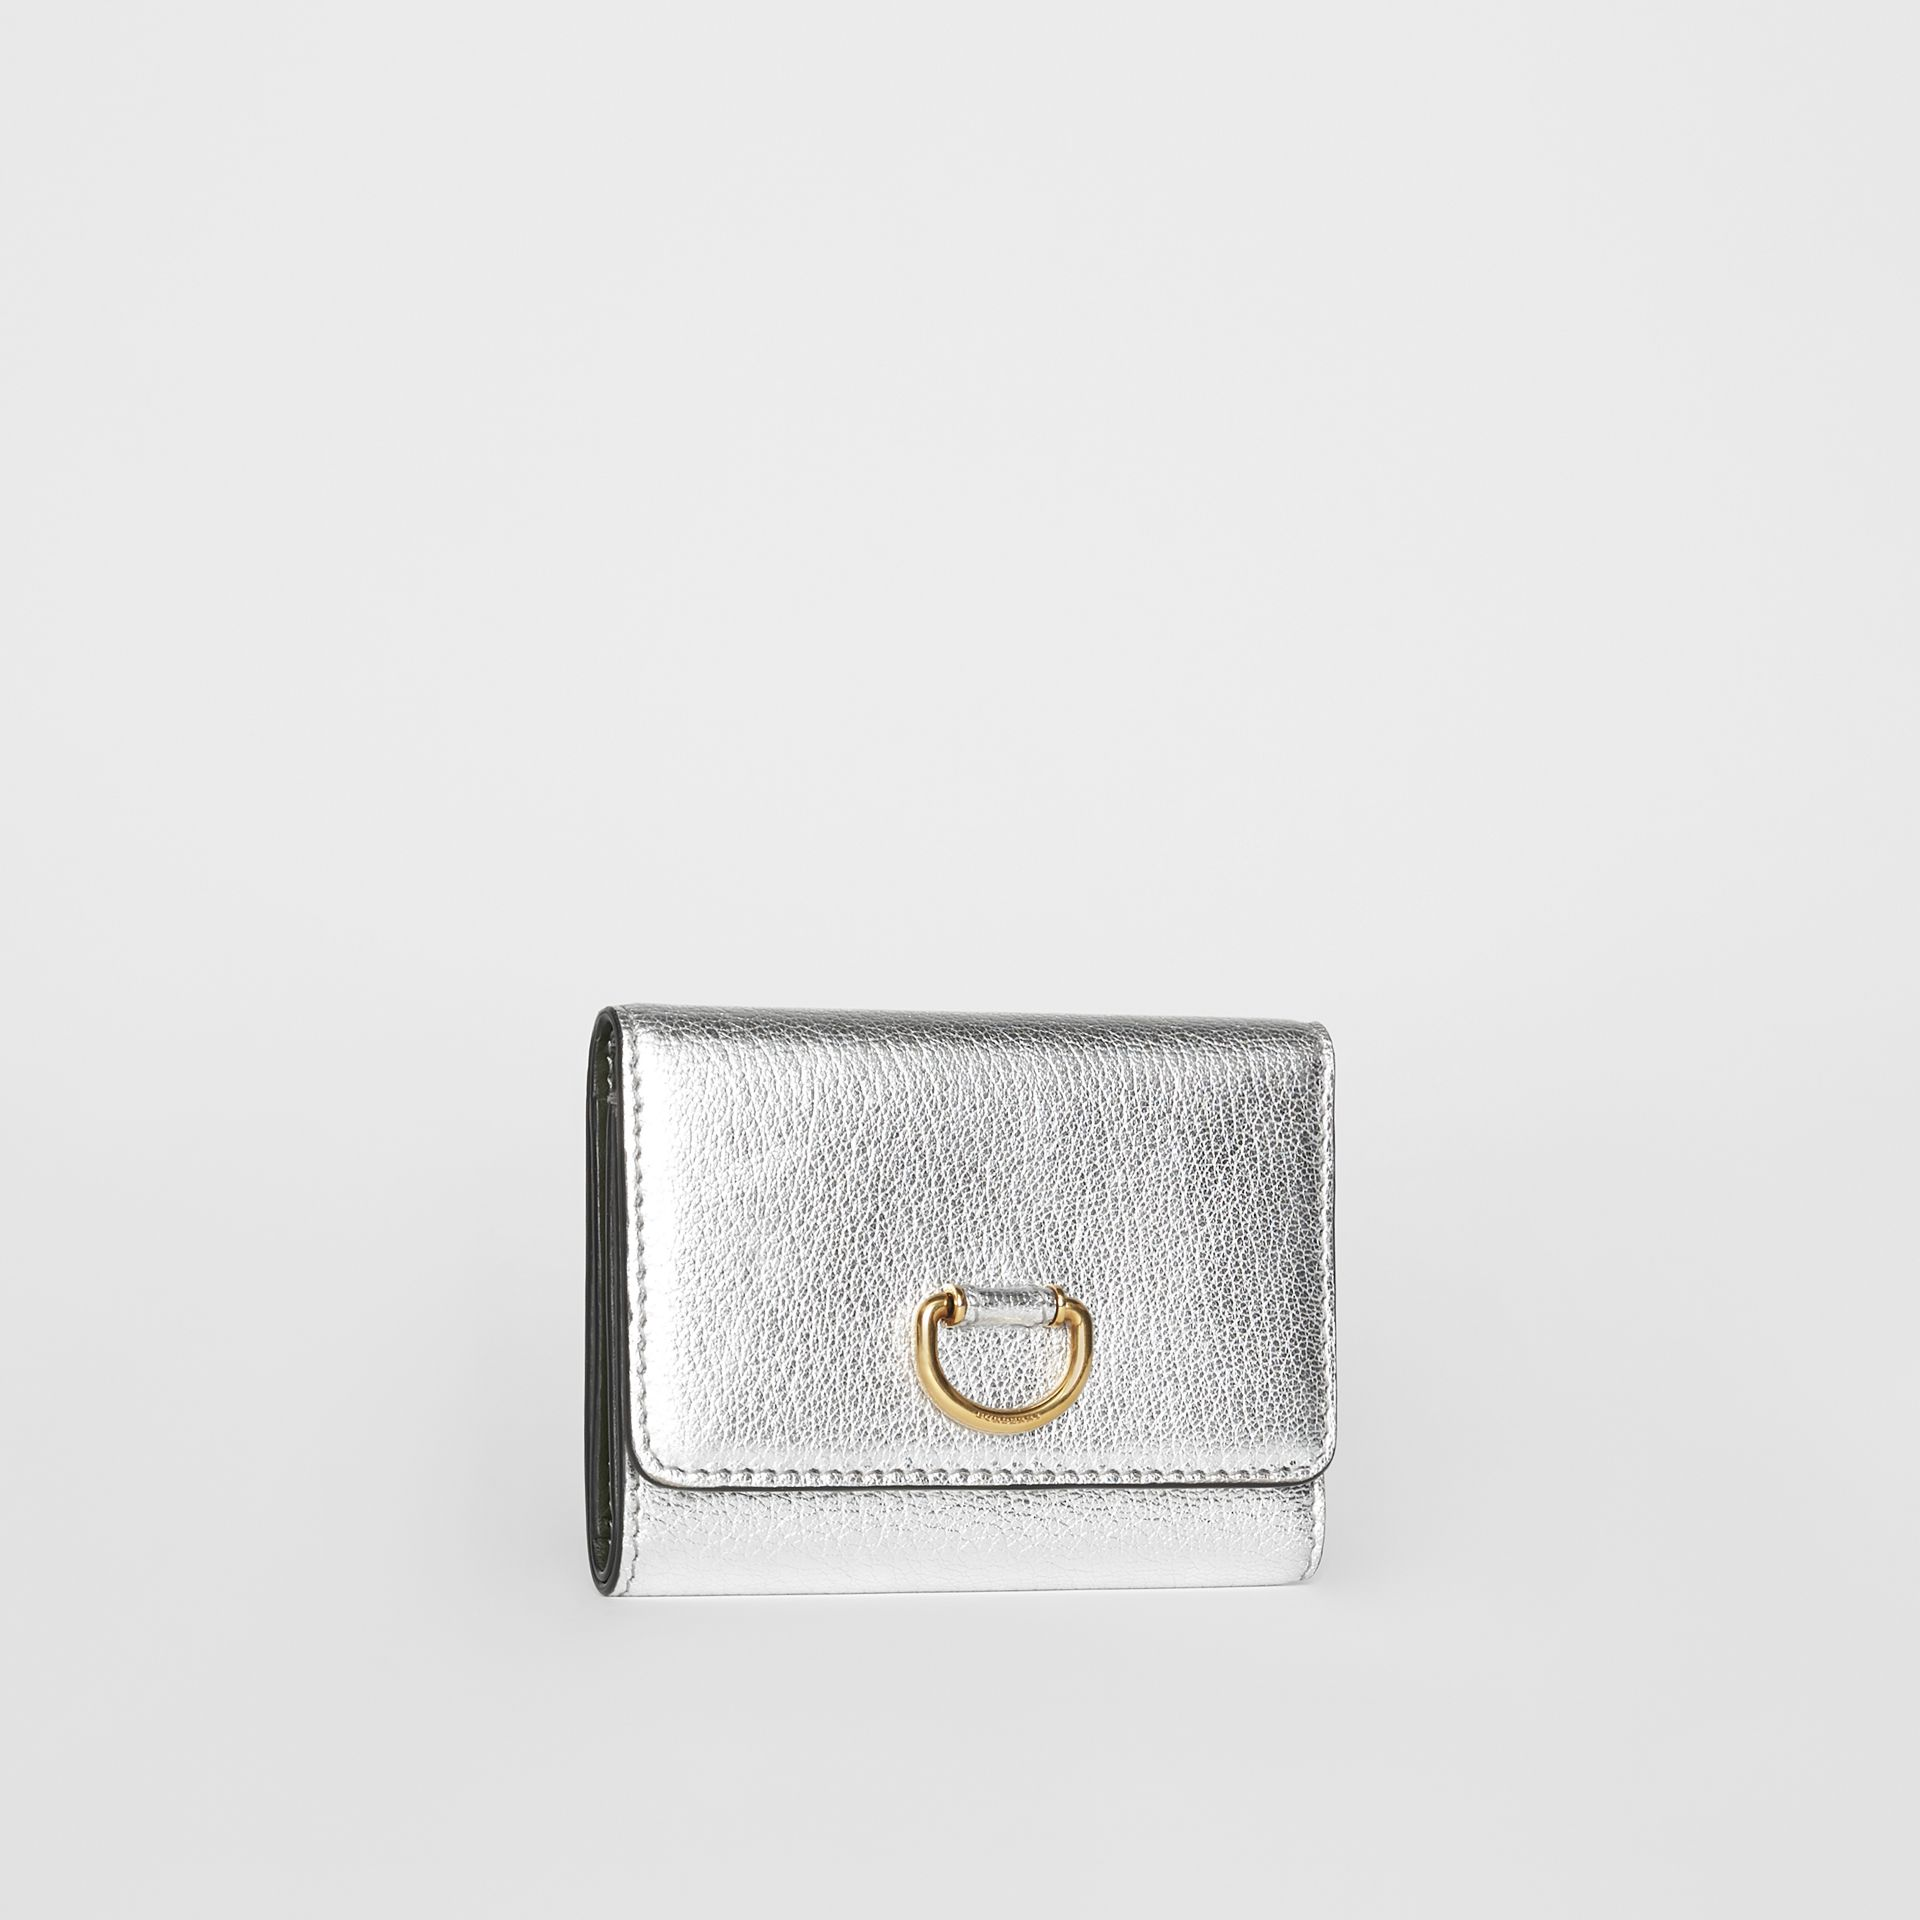 Small D-ring Metallic Leather Wallet in Silver - Women | Burberry - gallery image 3